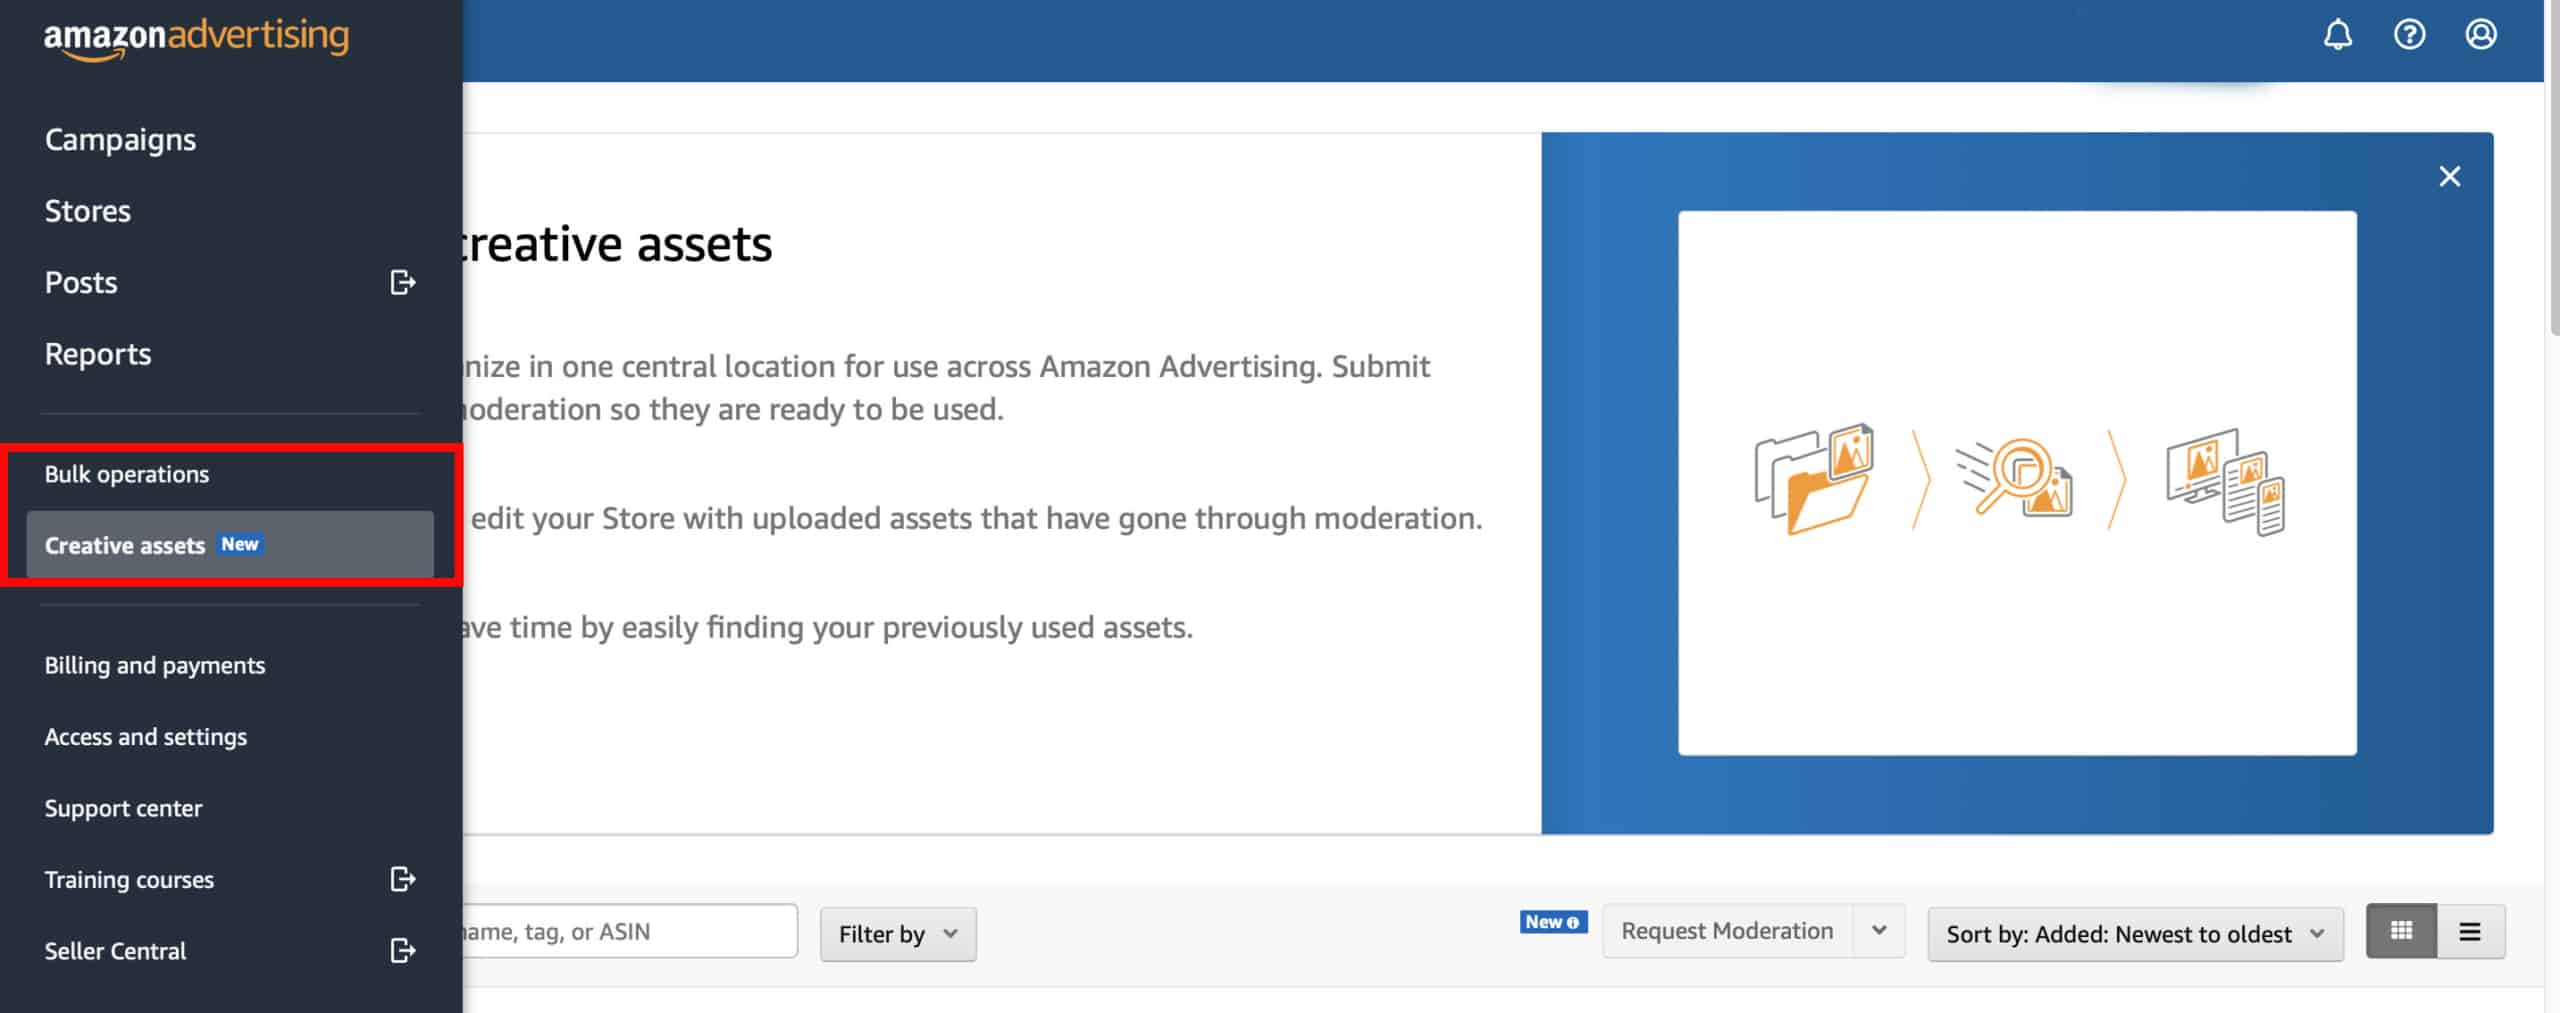 What is Amazon creative assets?